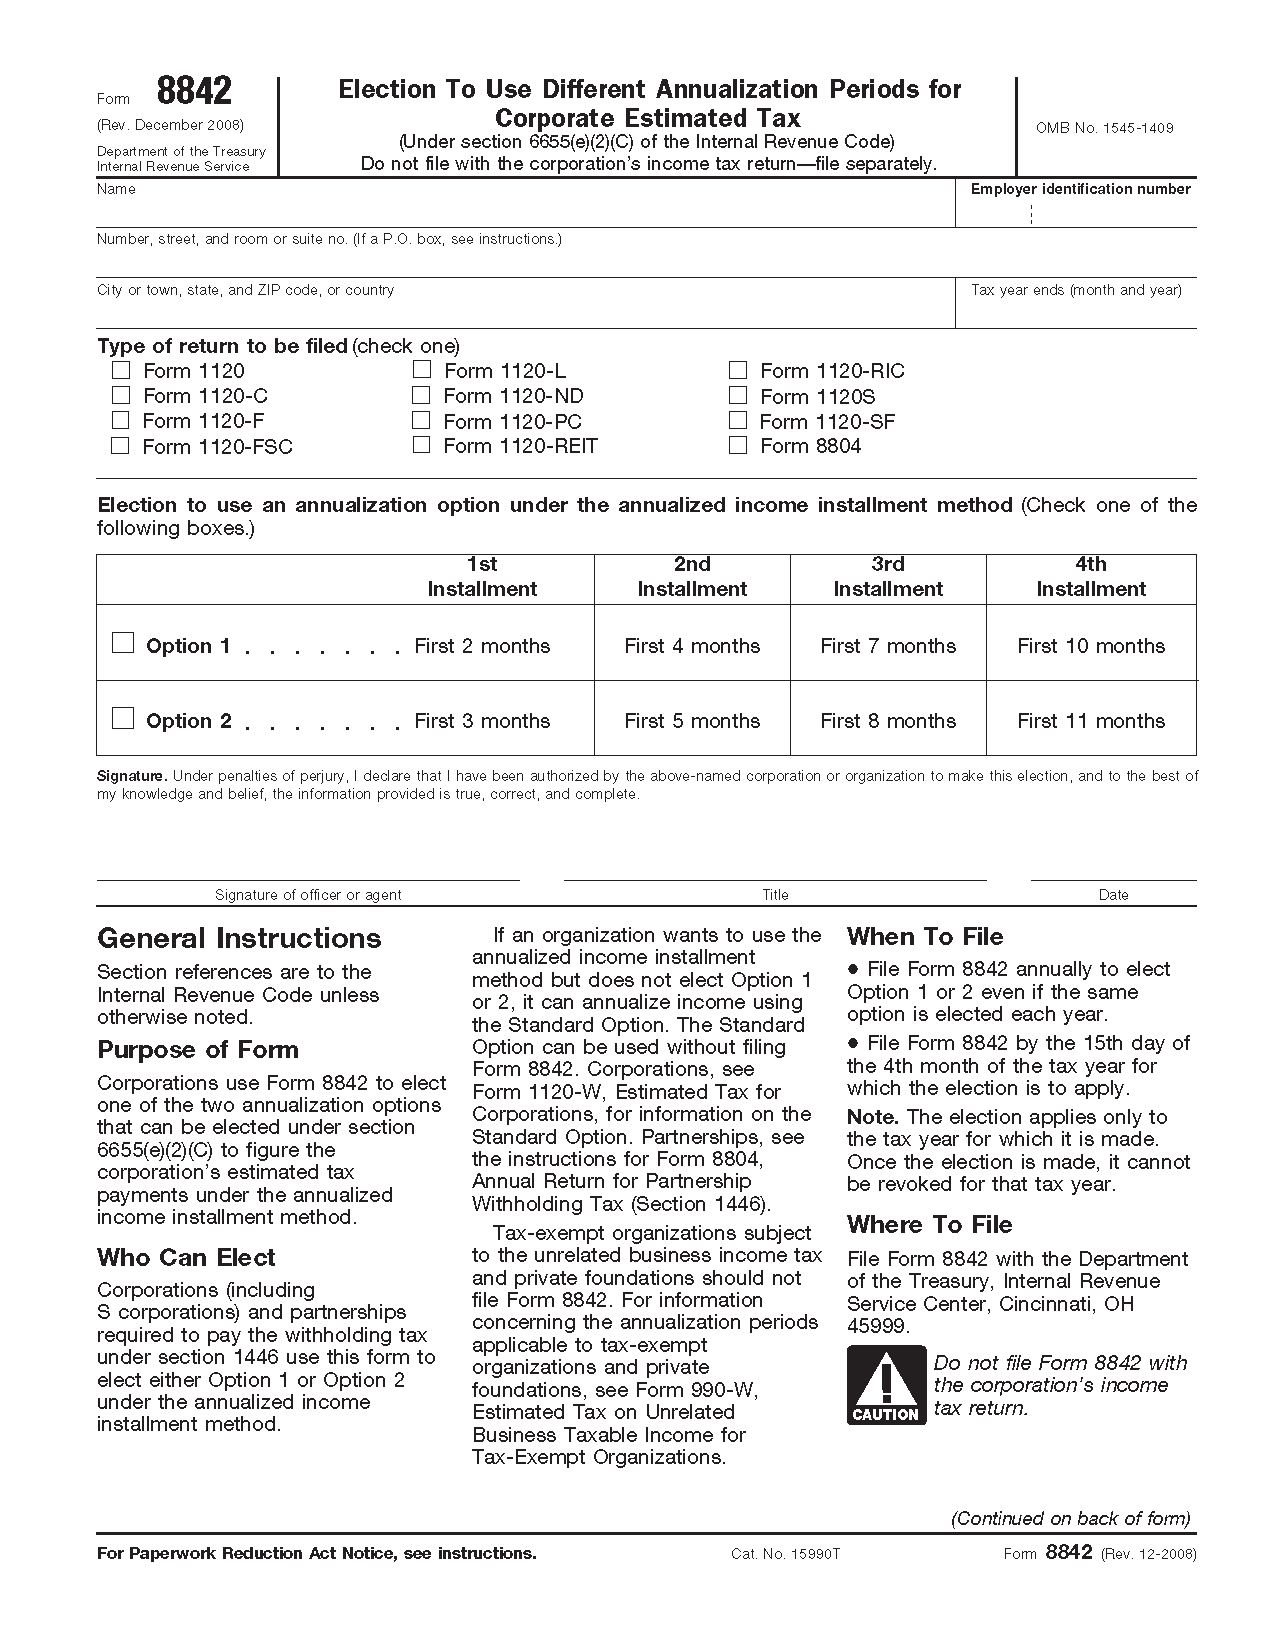 Form 8842 Election to Use Different Annualization Periods for ...